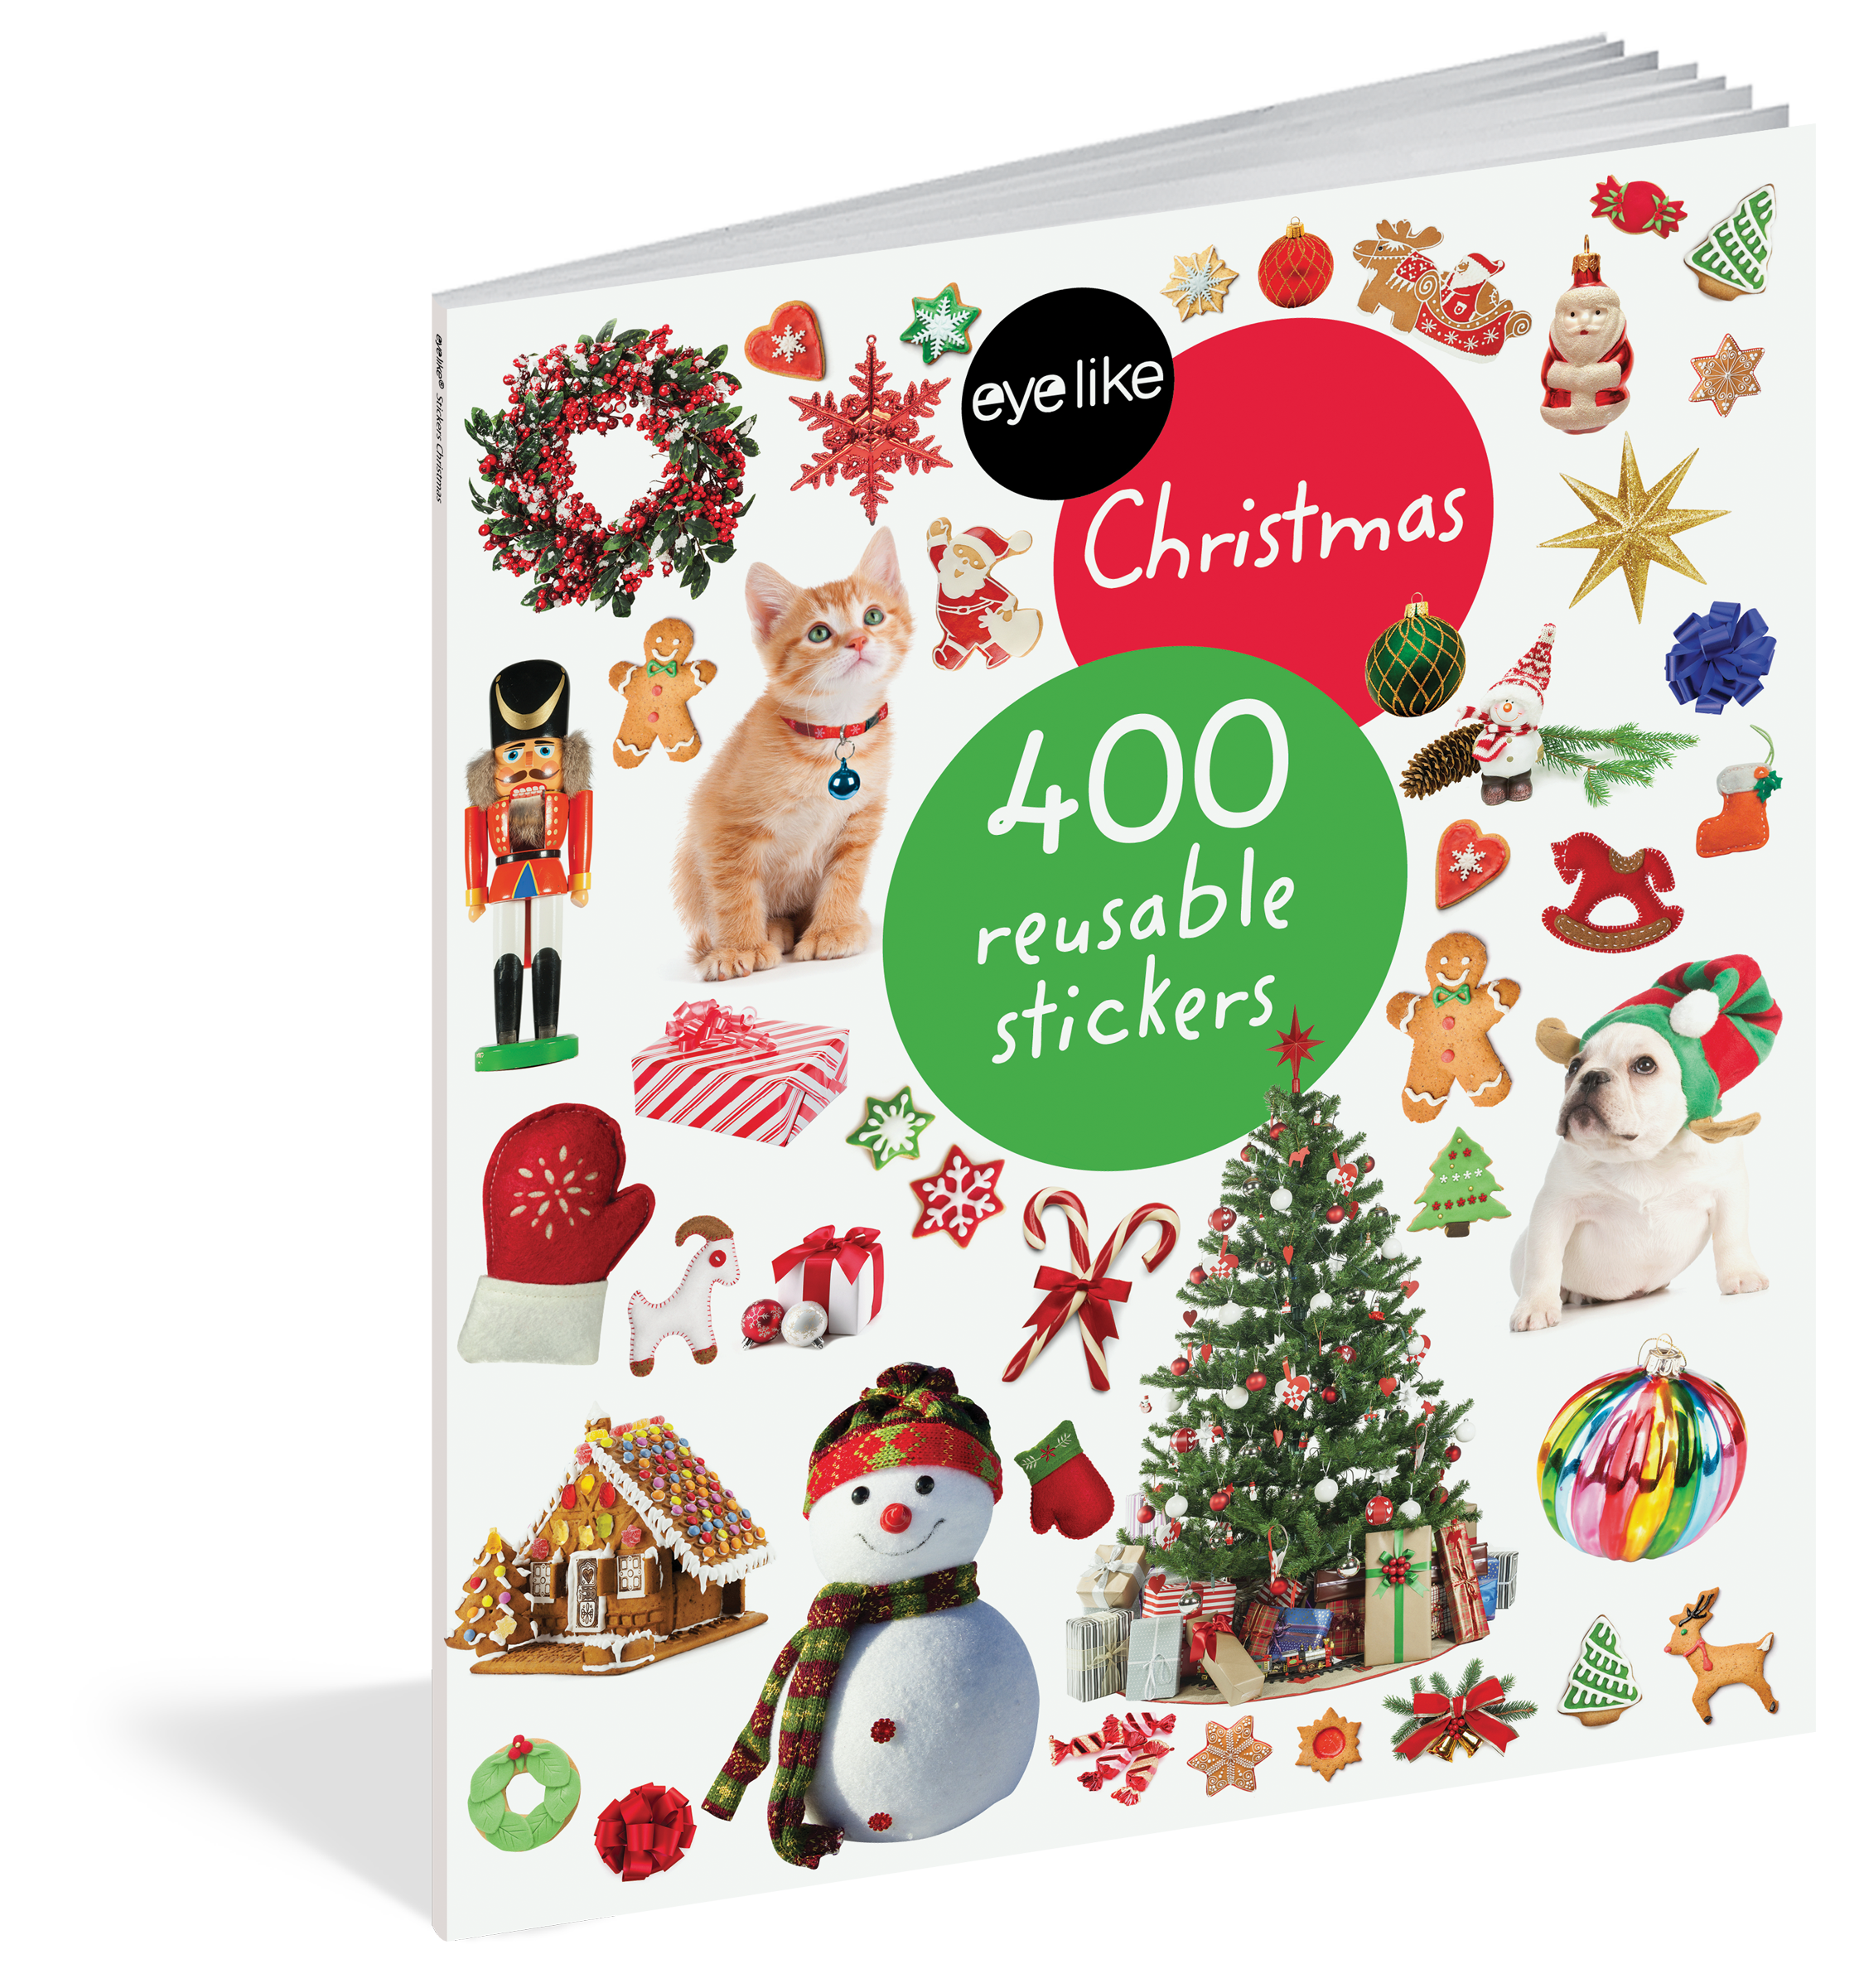 EyeLike Stickers: Christmas celebrates the biggest holiday of the year with 400 high-quality, photographic images that are amazingly lifelike in color and detail. The durable, reusable stickers are designed to be stuck on and peeled off over and over again without losing adhesive. Ornaments and Santa hats, reindeer and an old-fashioned sleigh, trees to decorate, stockings to hang, presents to unwrap—every page of stickers captures the feeling of Christmas.